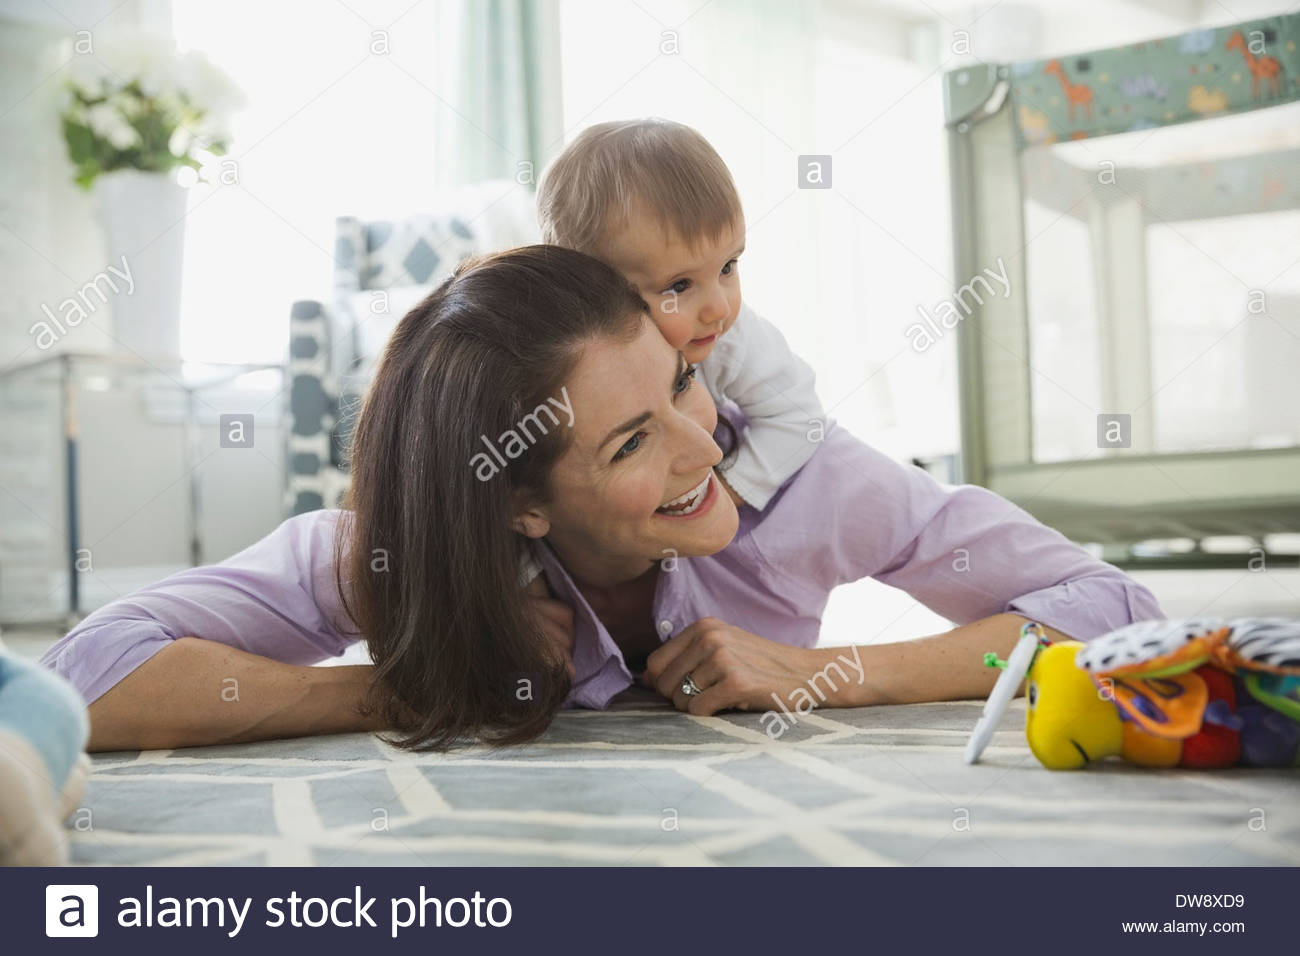 Cheerful woman playing with baby girl at home - Stock Image